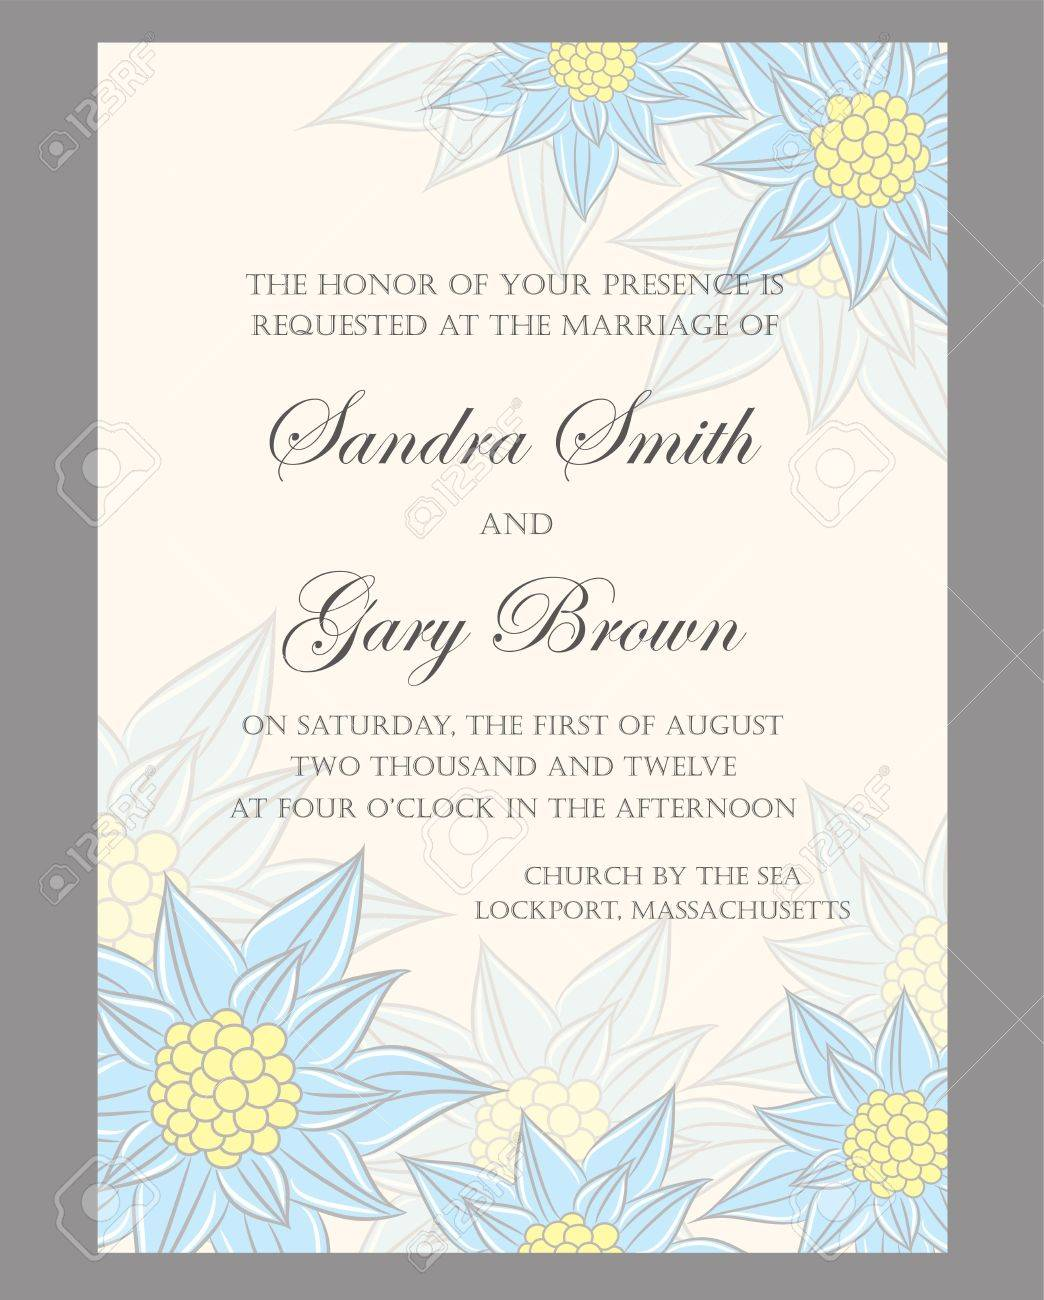 Floral wedding invitation or announcement card Stock Vector - 18700130